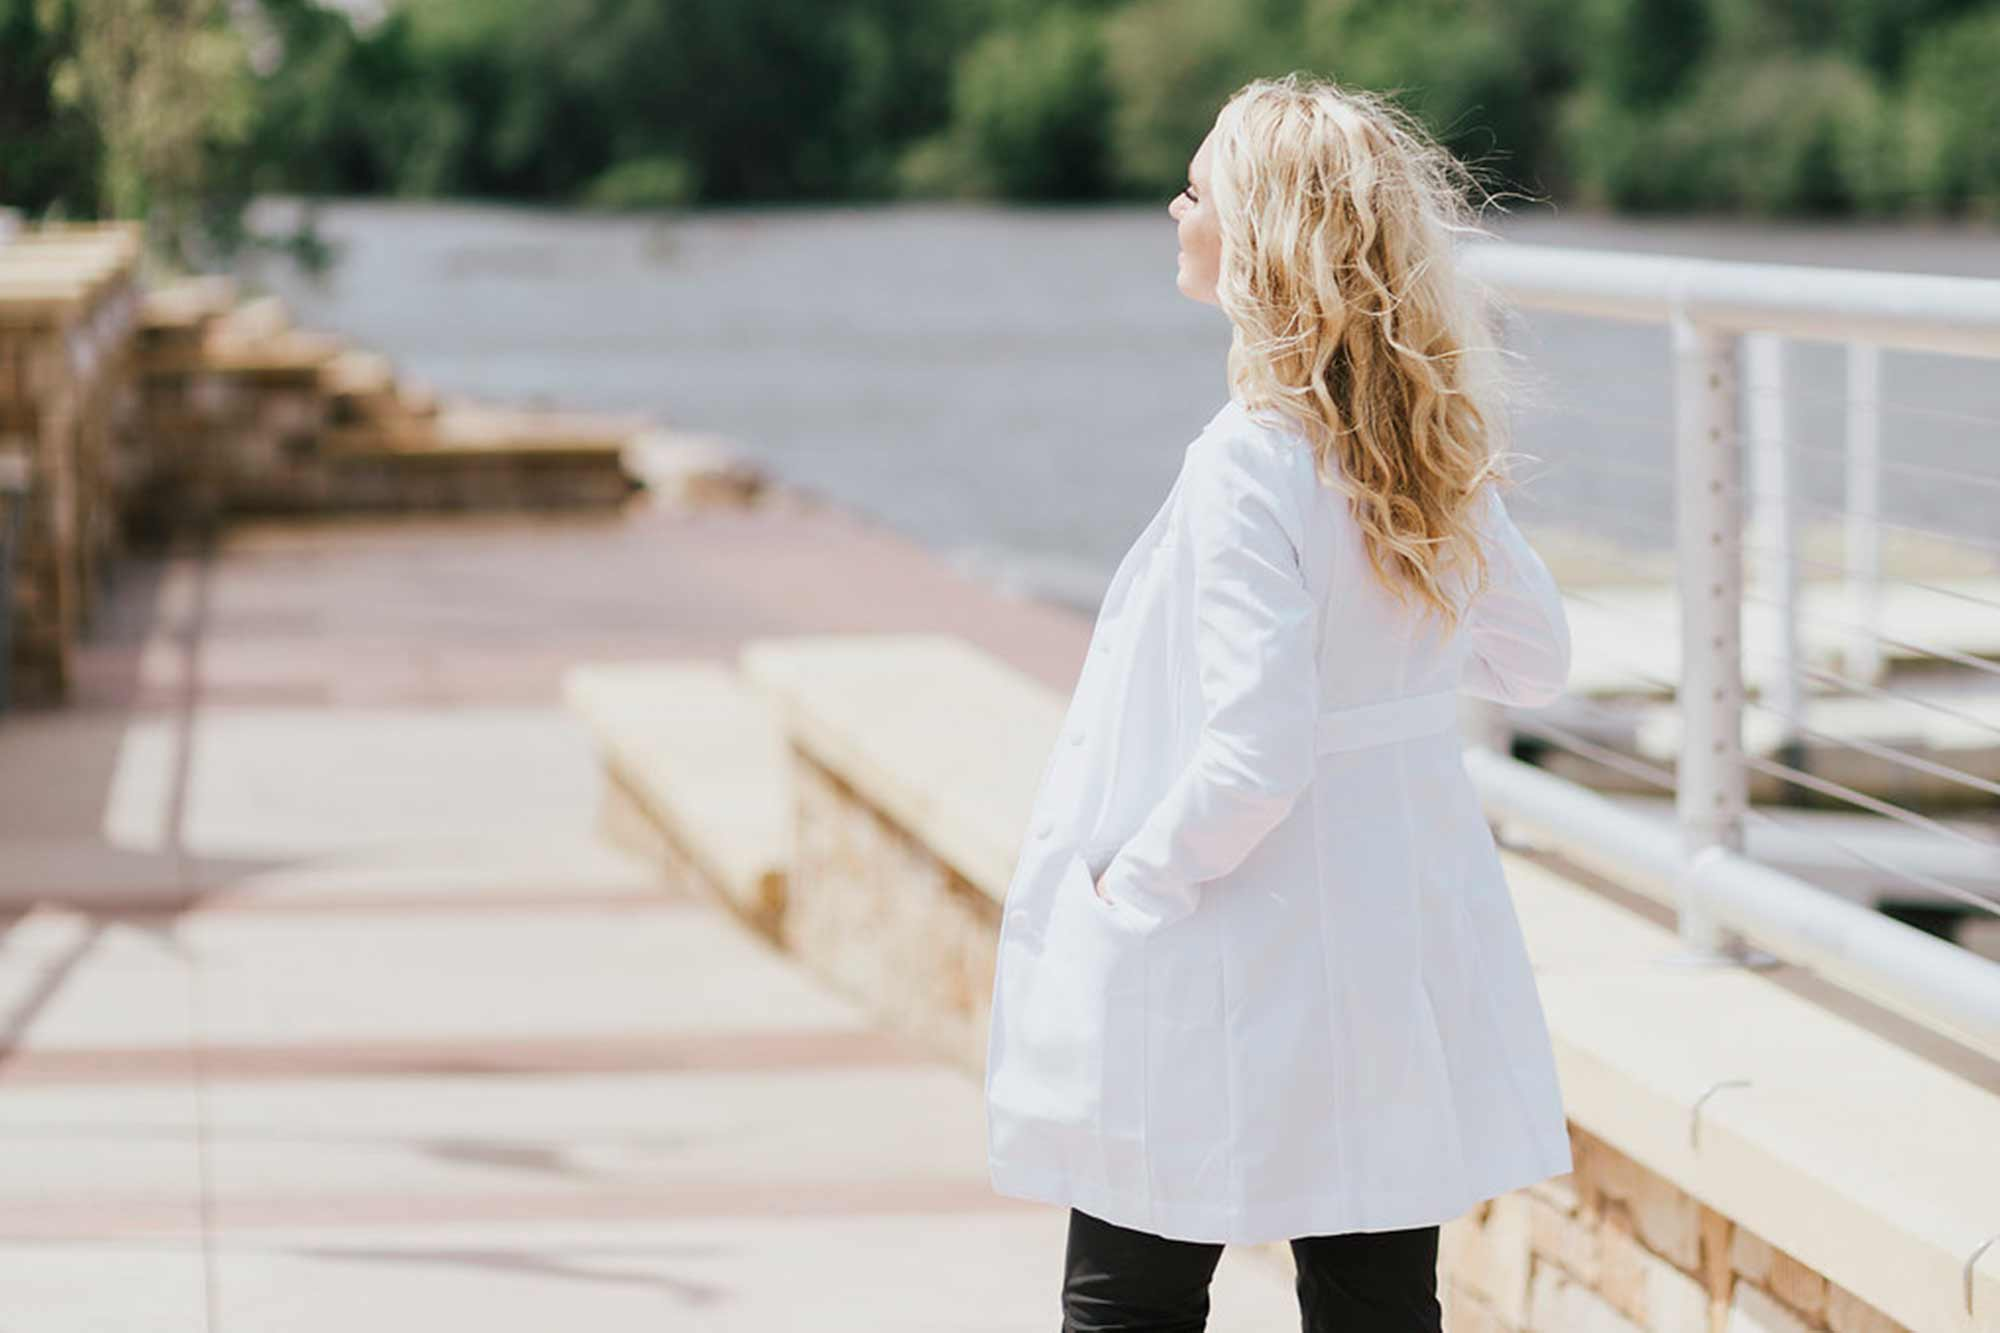 Dealing With Body Image As A Woman In Medicine